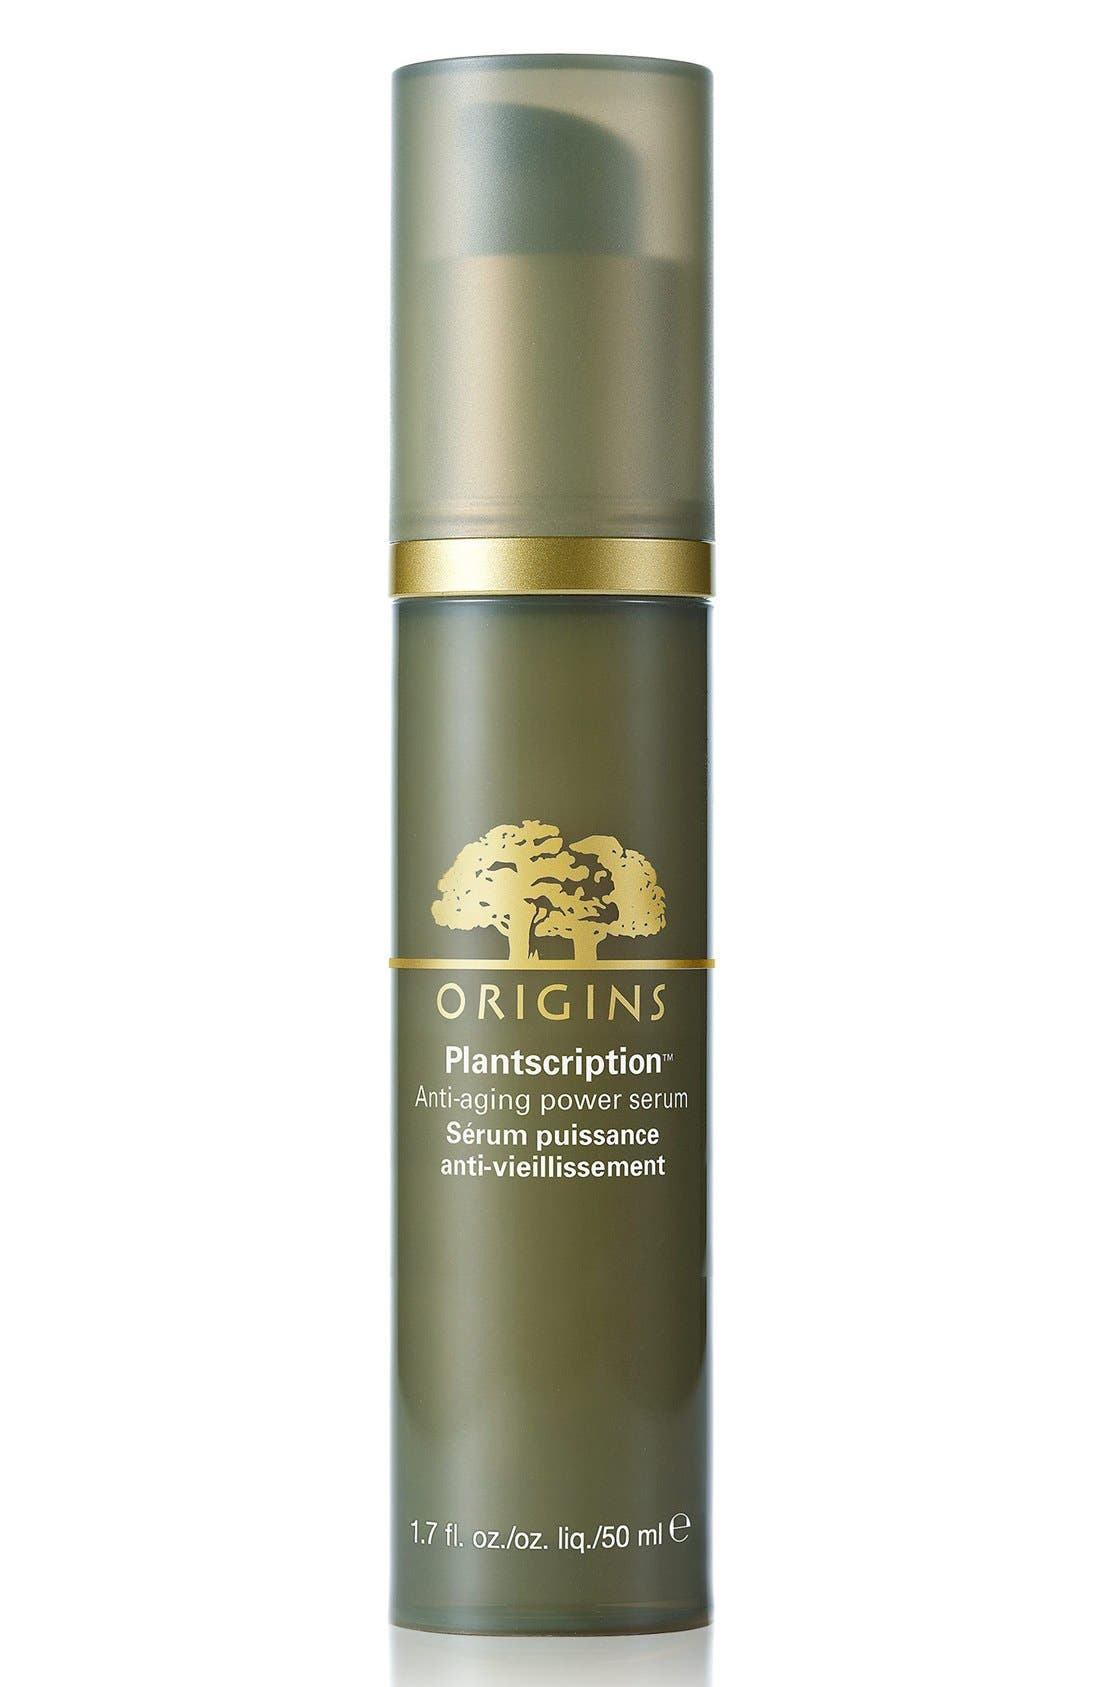 Origins Plantscription™ Anti-Aging Power Serum